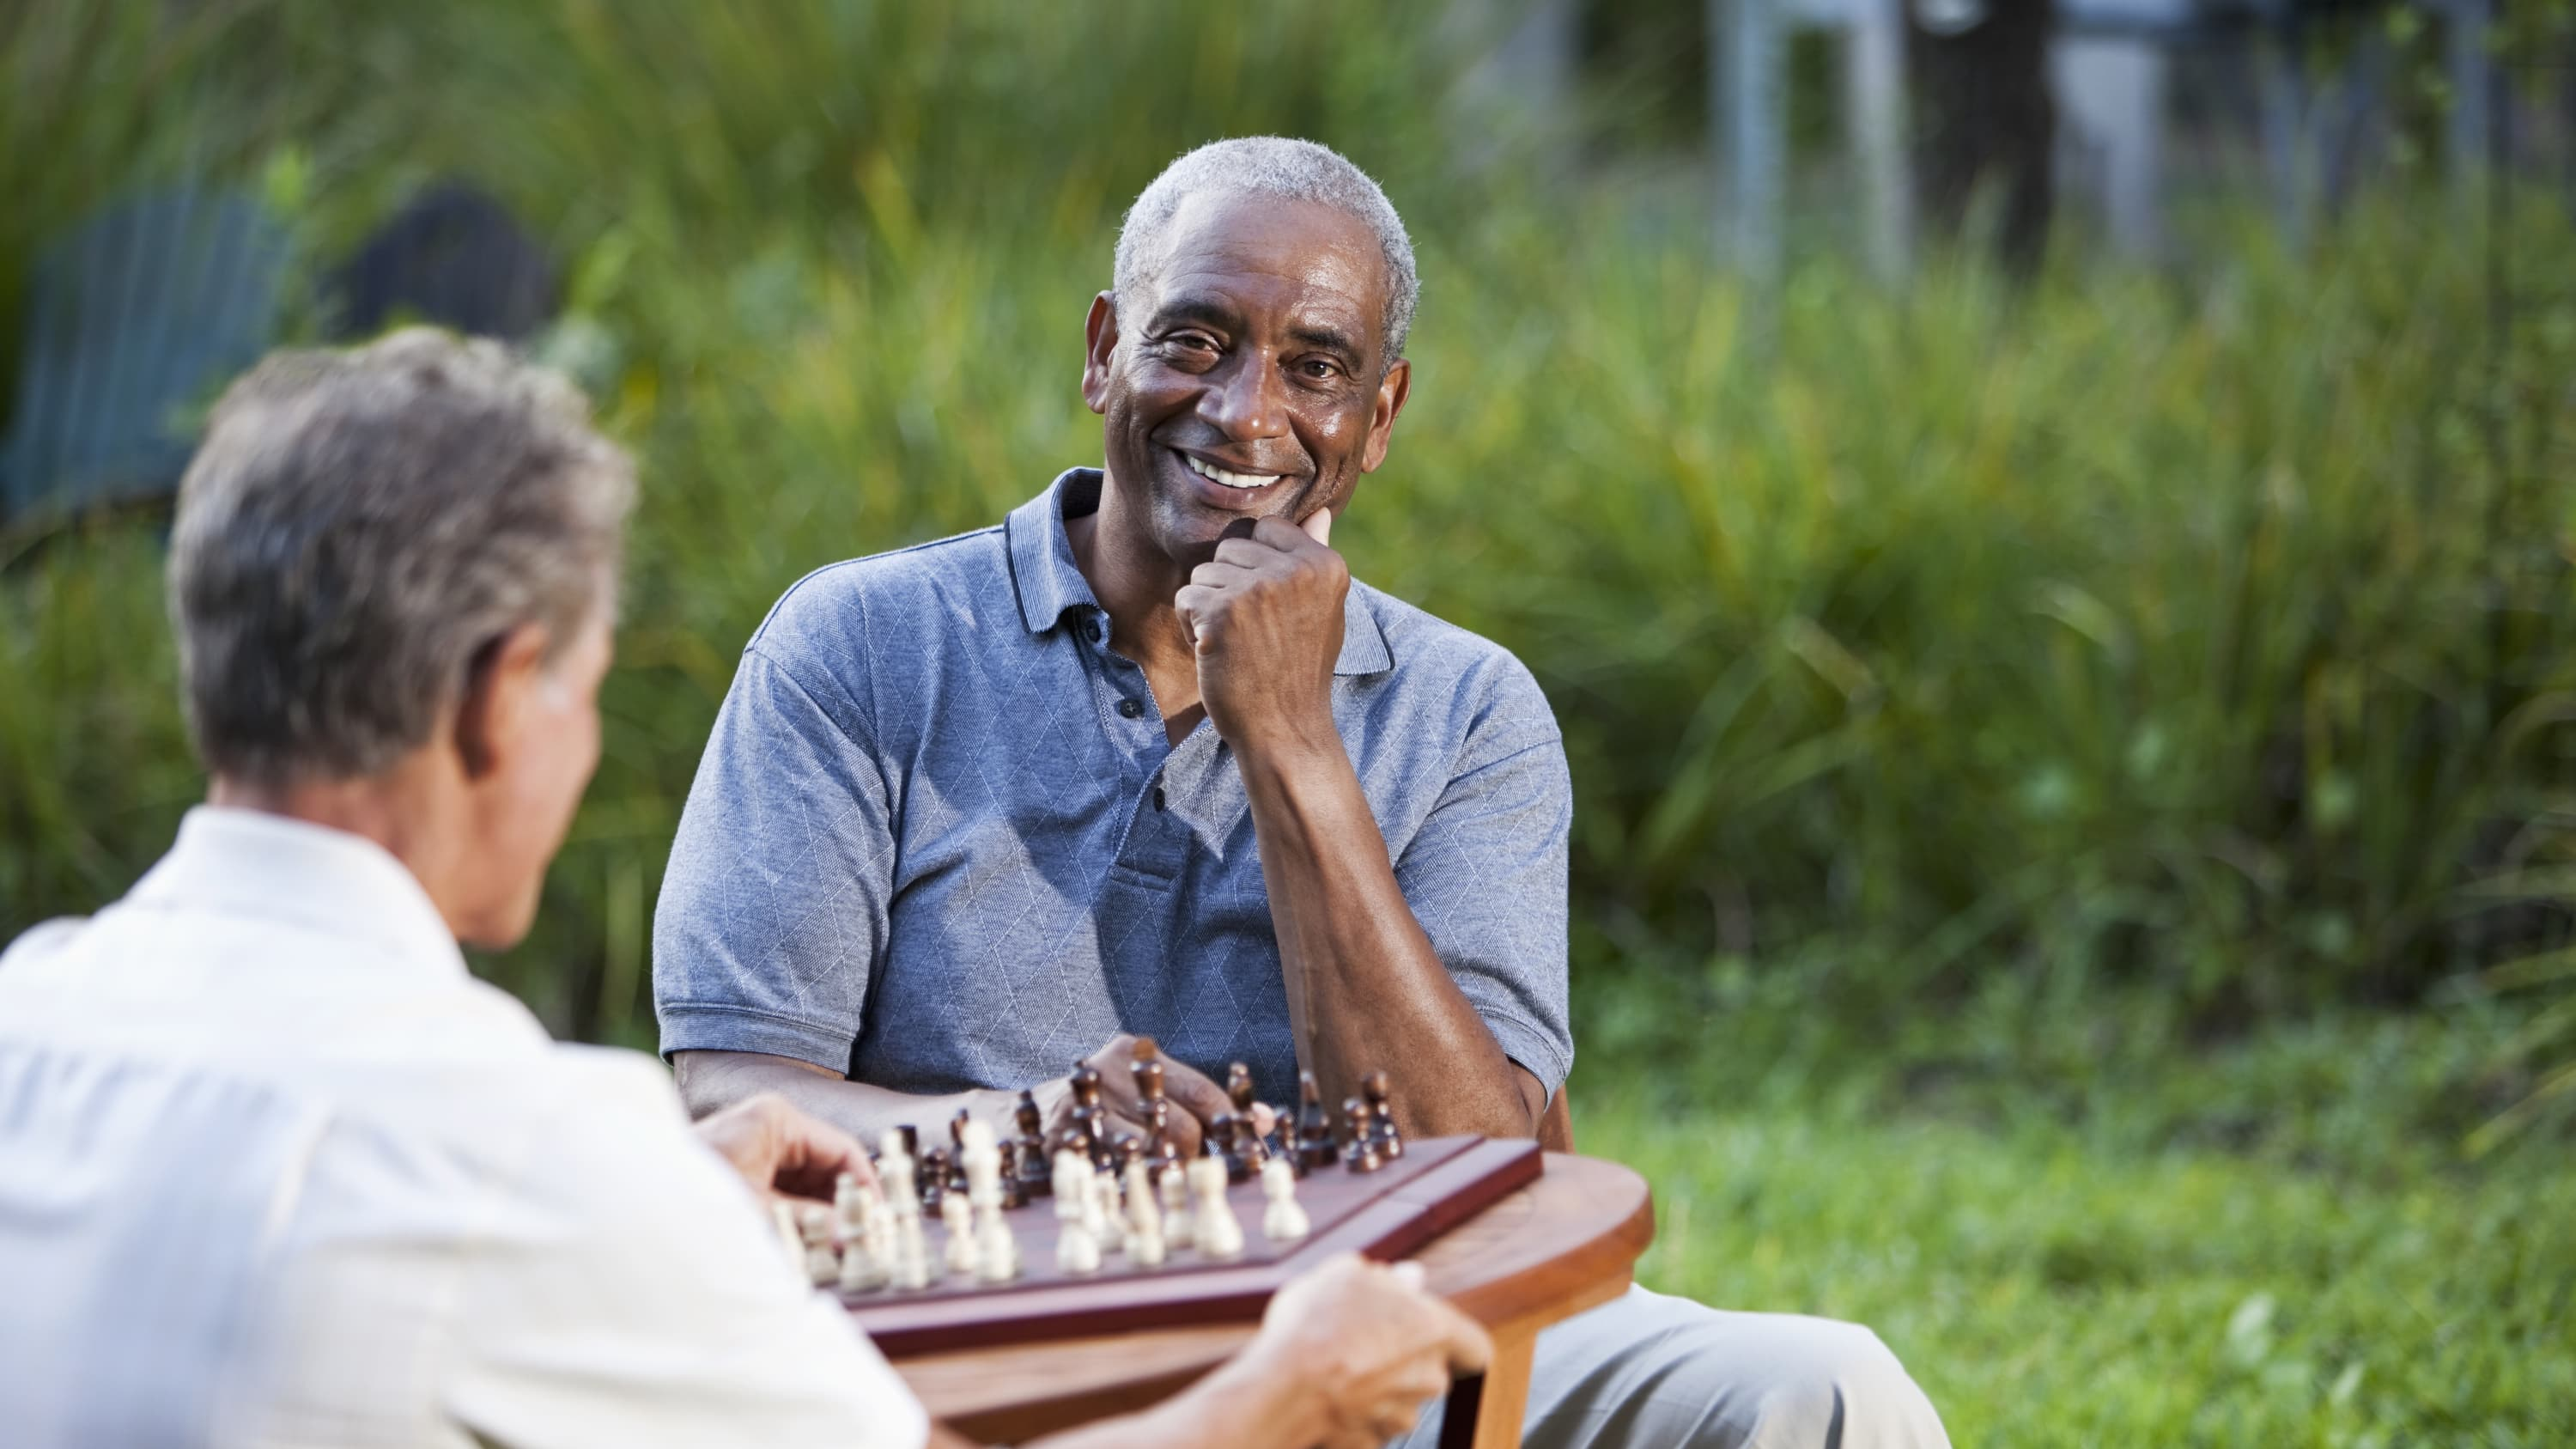 A senior African American man who may need a UroLift plays chess.